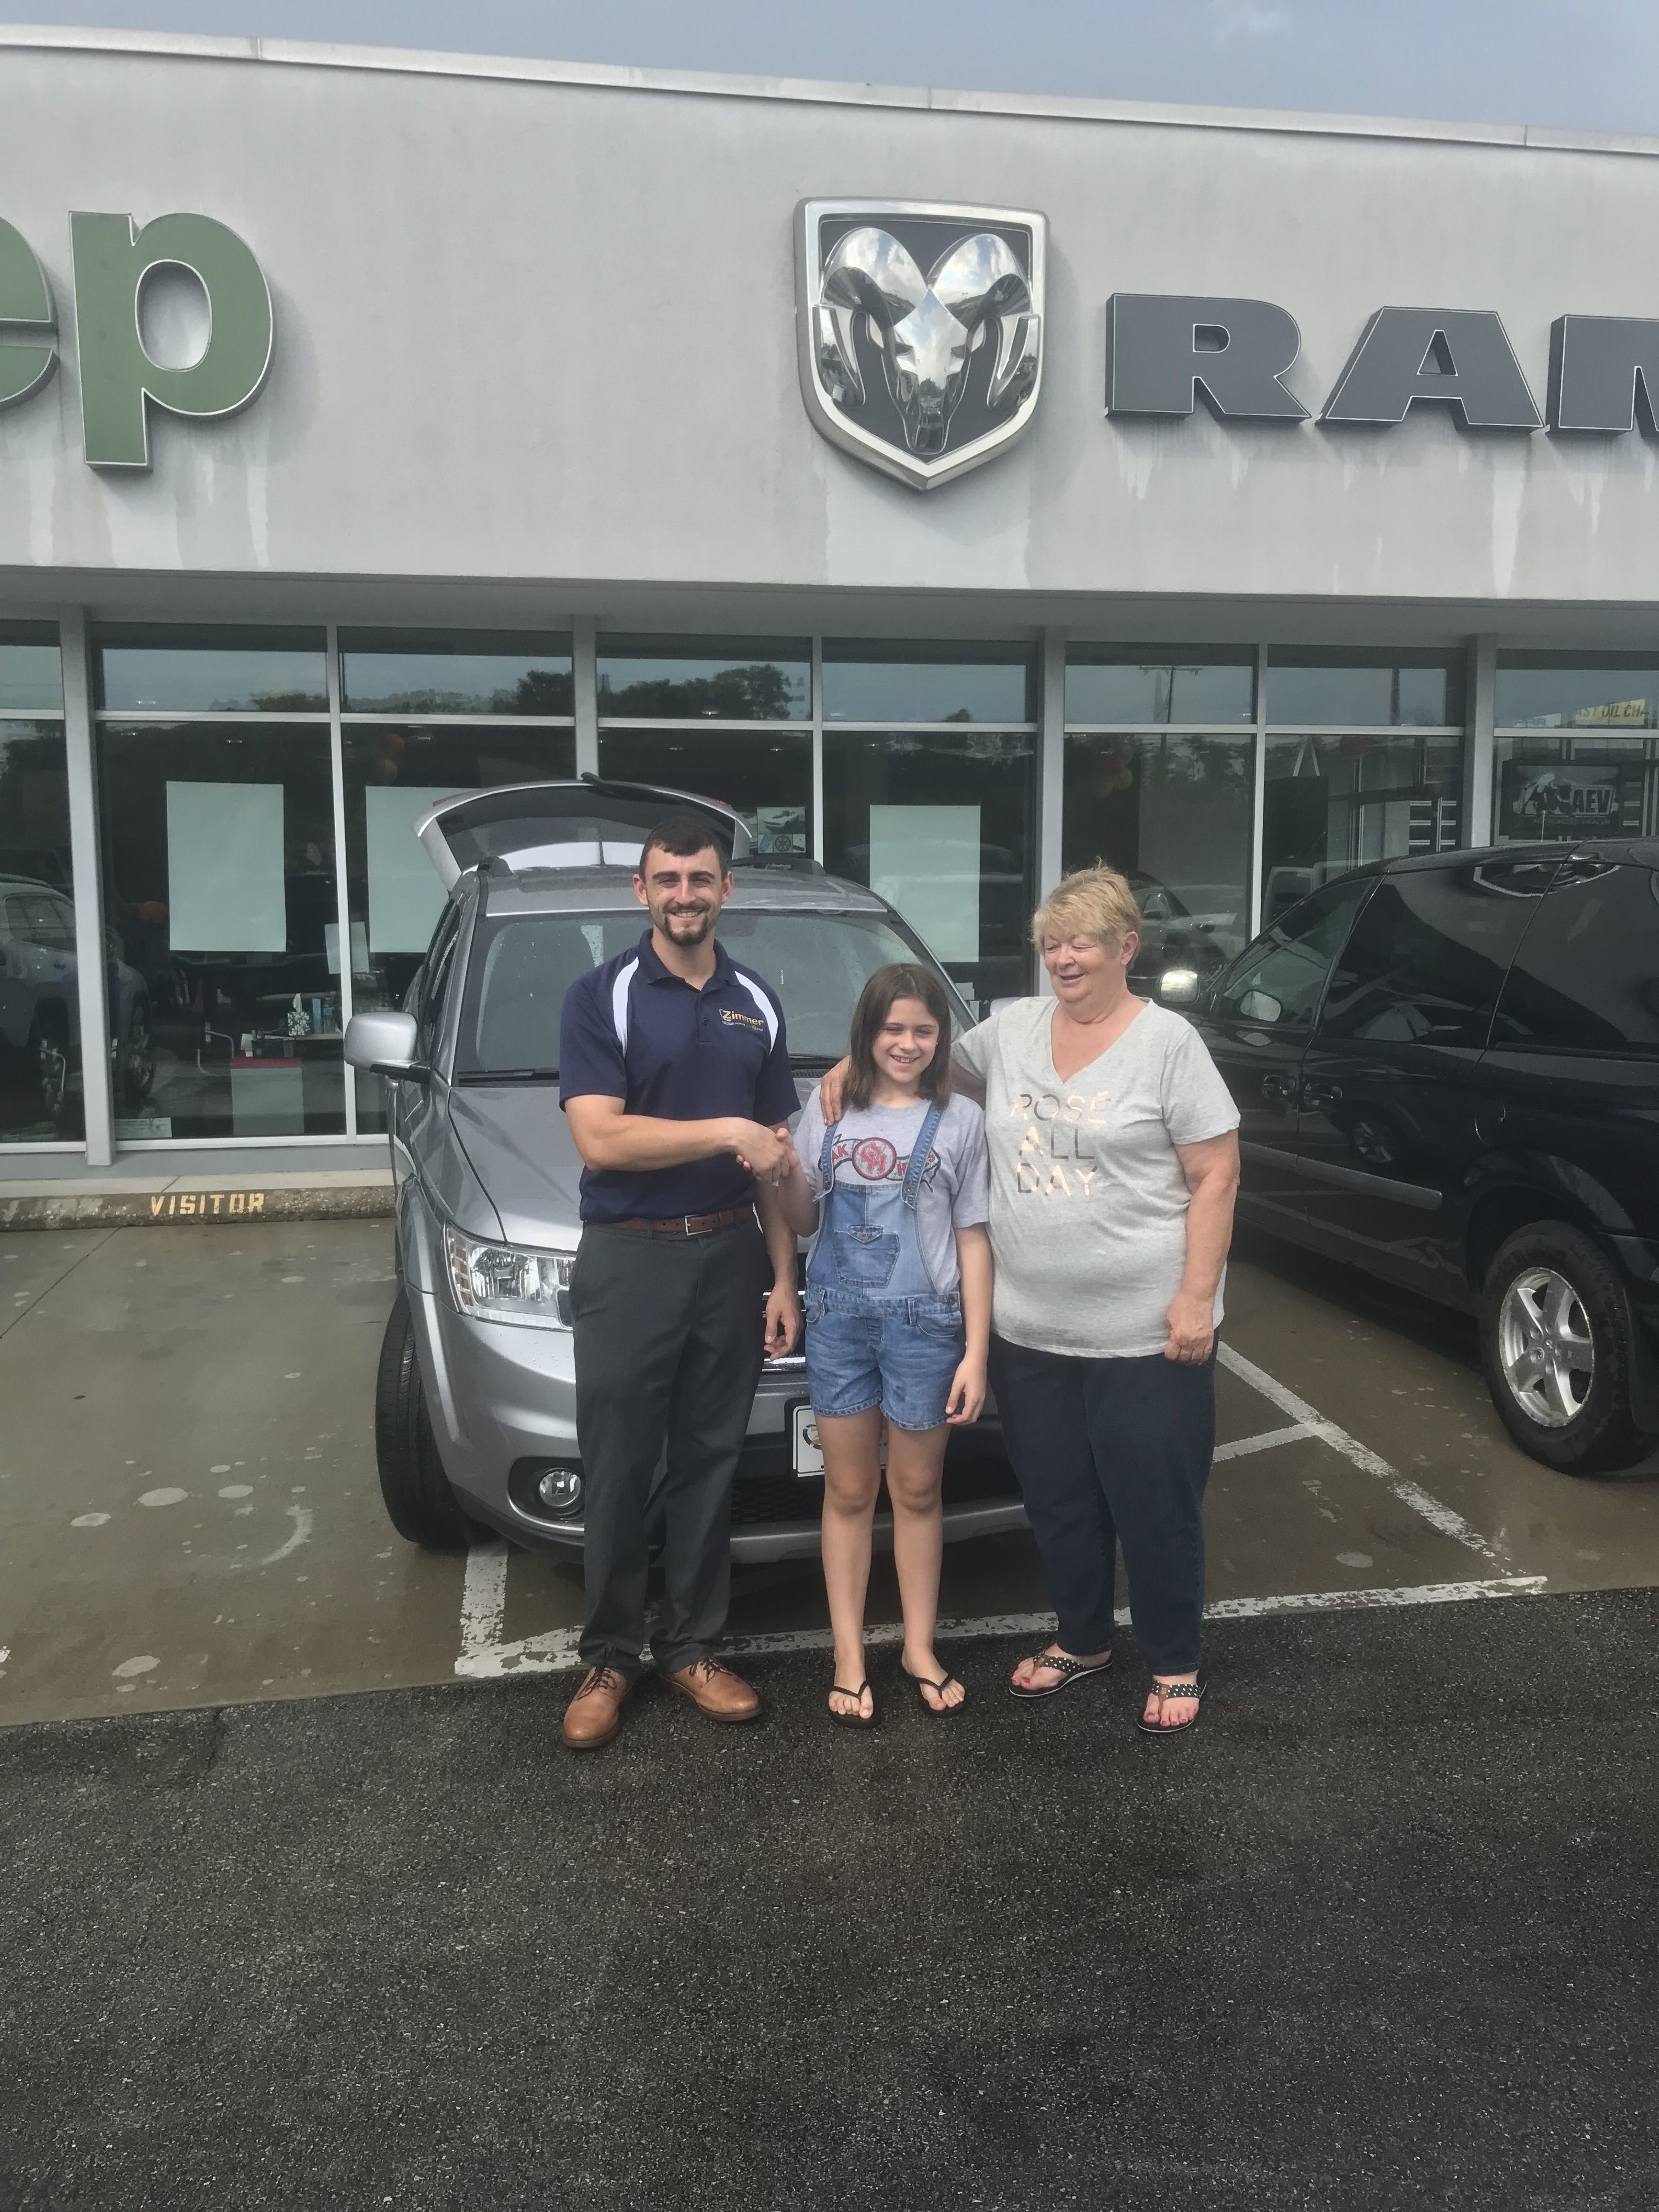 Congratulations to Elaine Offill! She stopped in with her